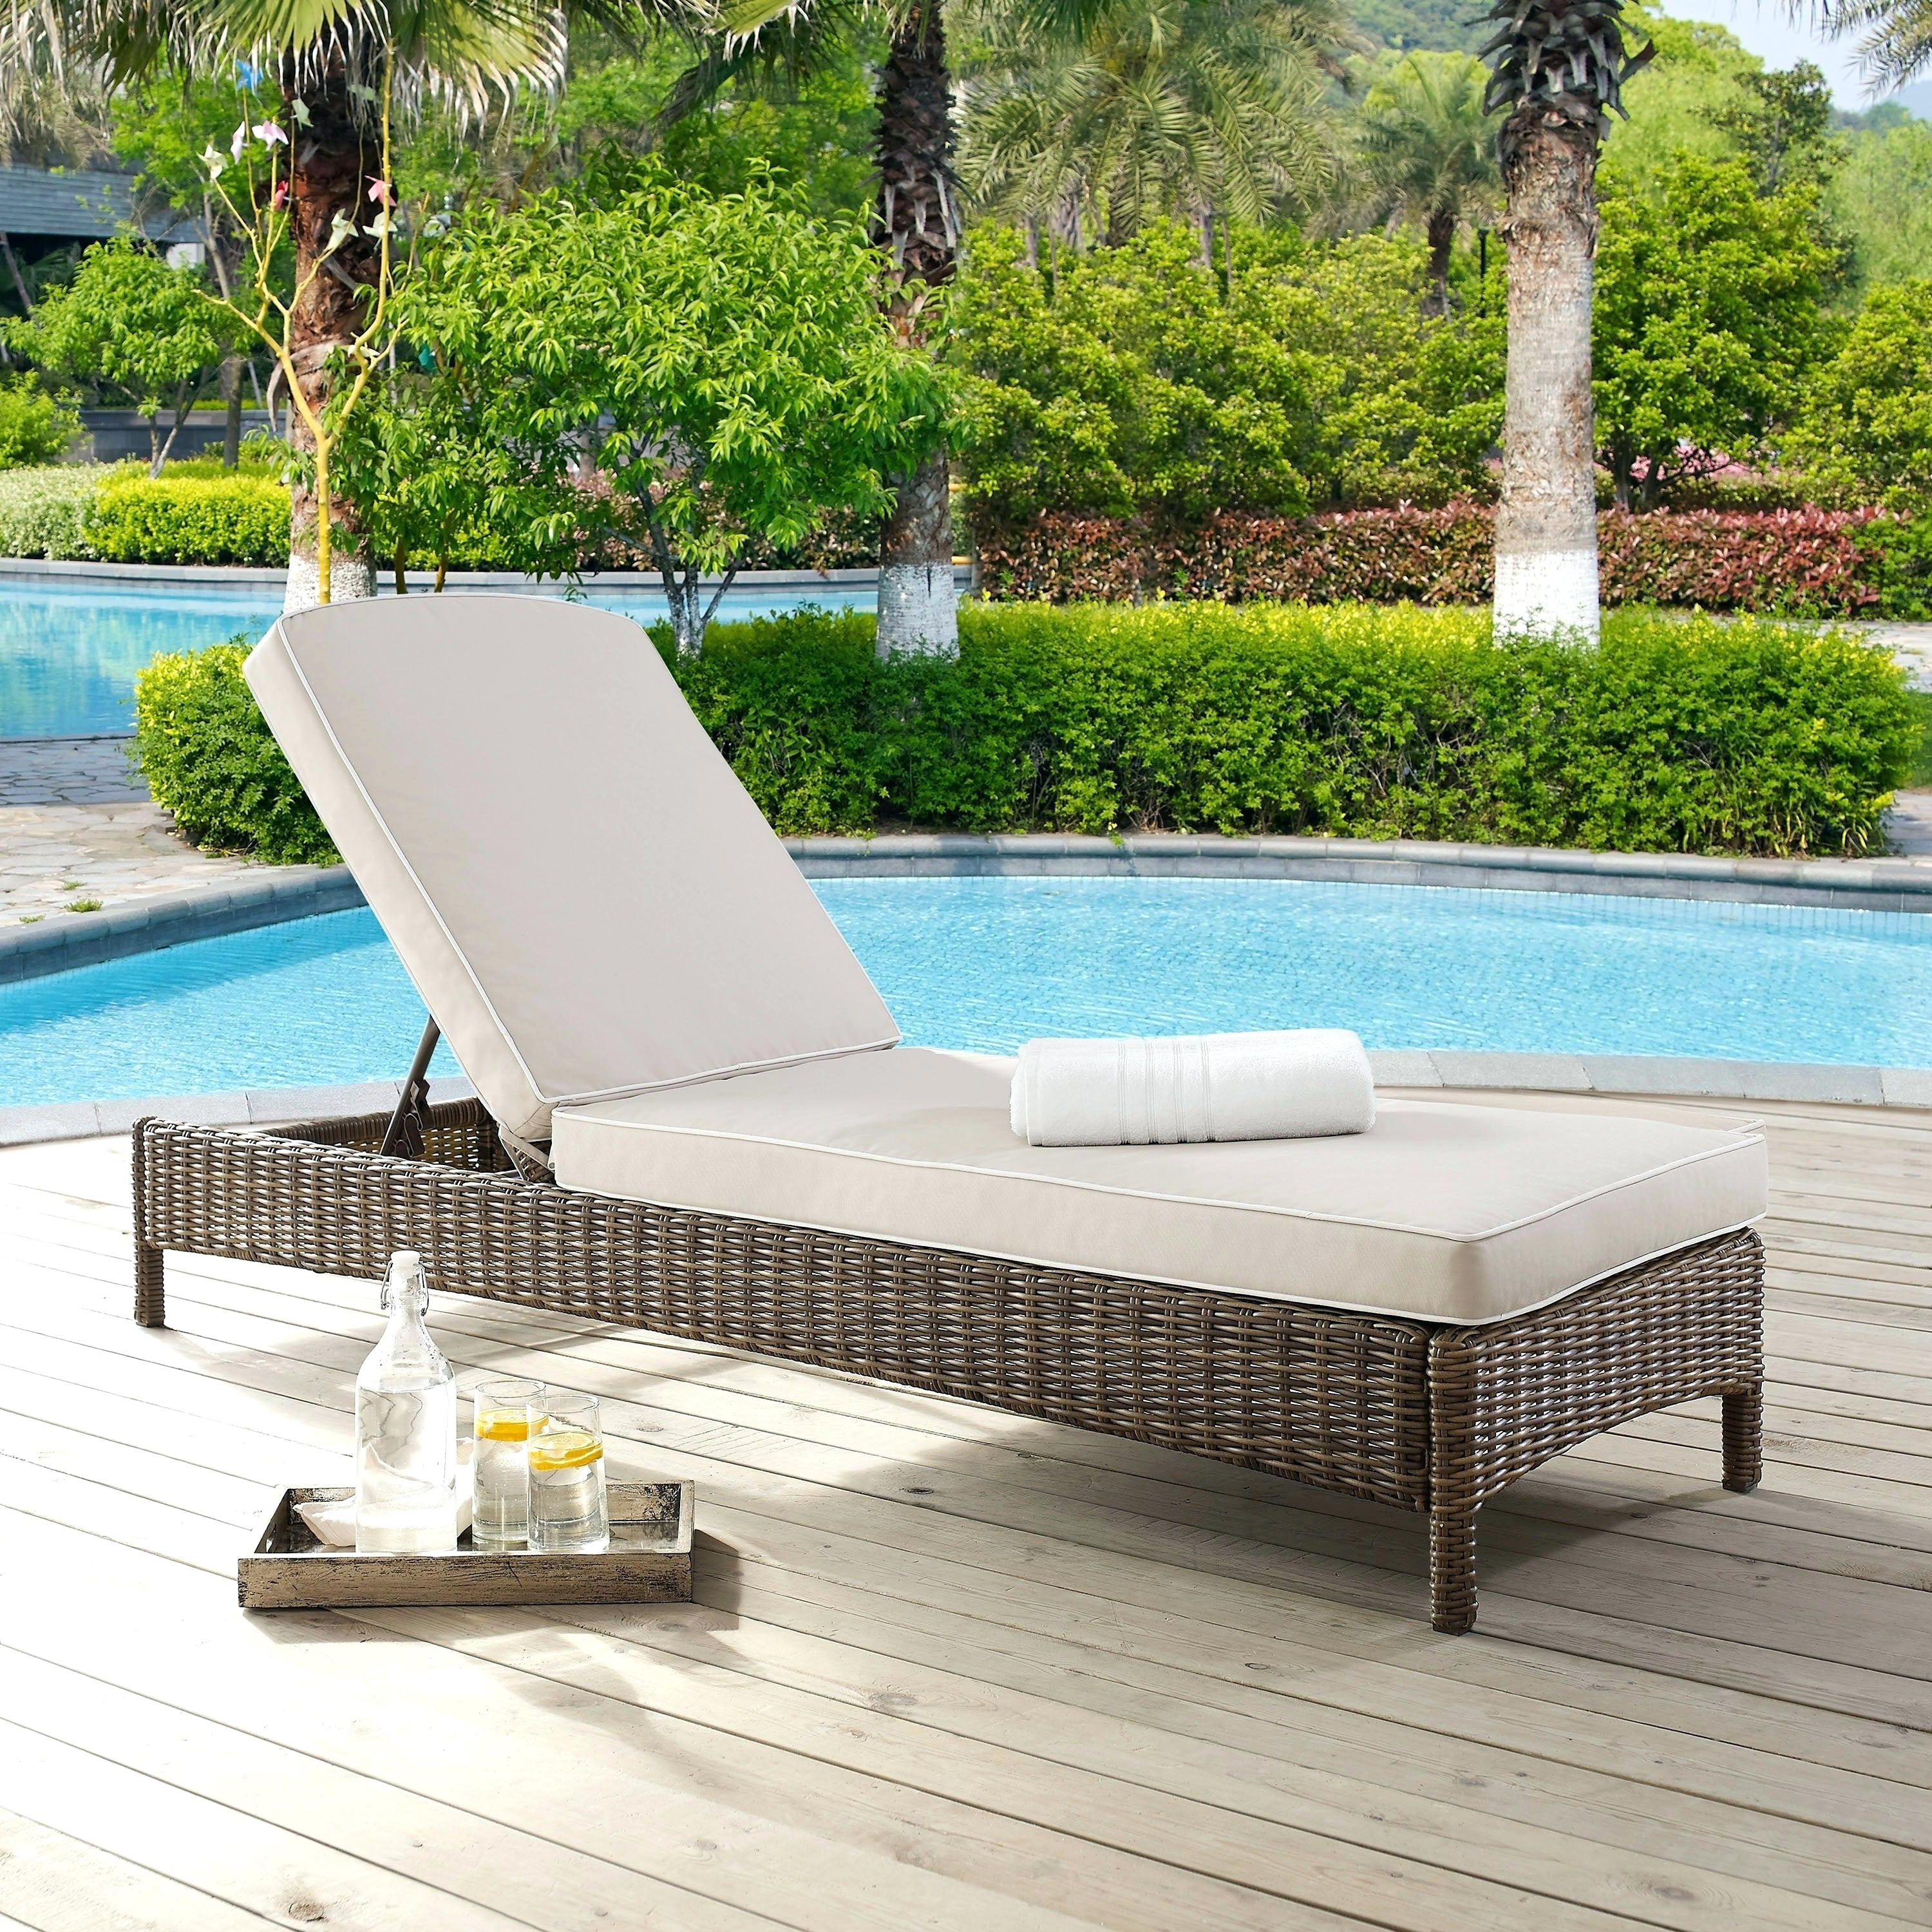 2020 Chaise Lounge Pool – Mariafernandacabal (View 25 of 25)